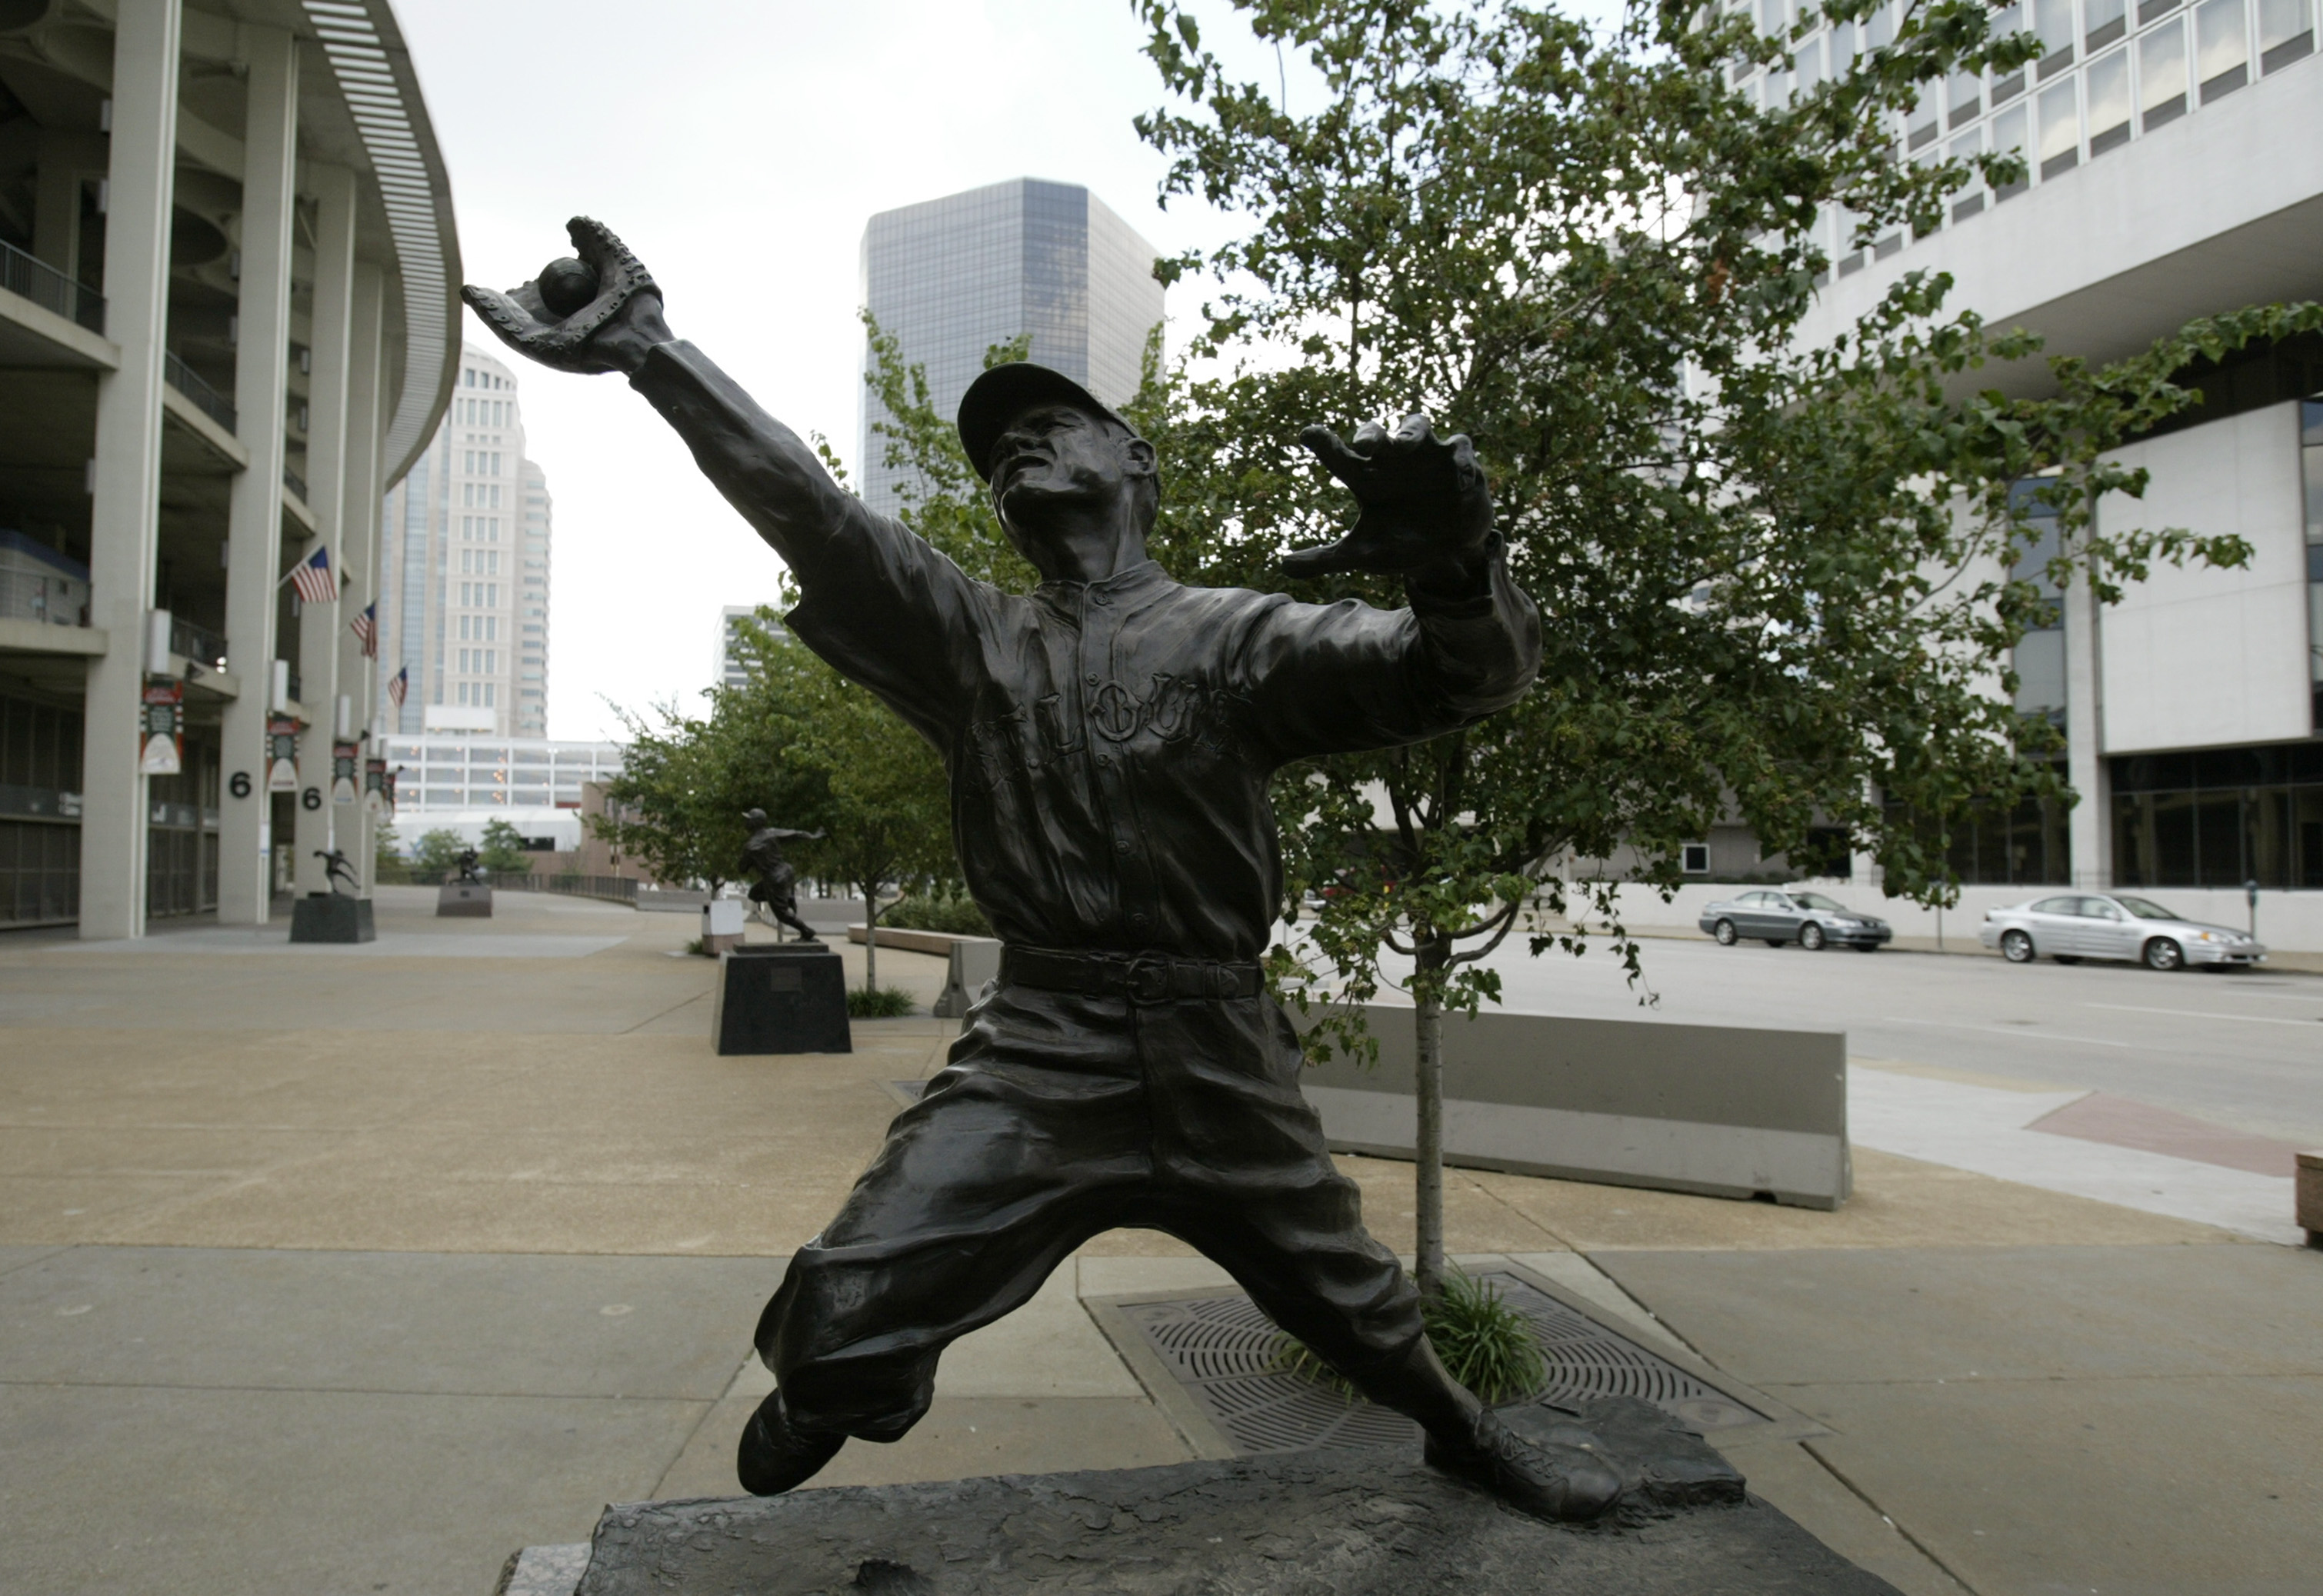 This statue of George Sisler is not outside of Camden Yards, but rather in St. Louis where the Cardinals call home.